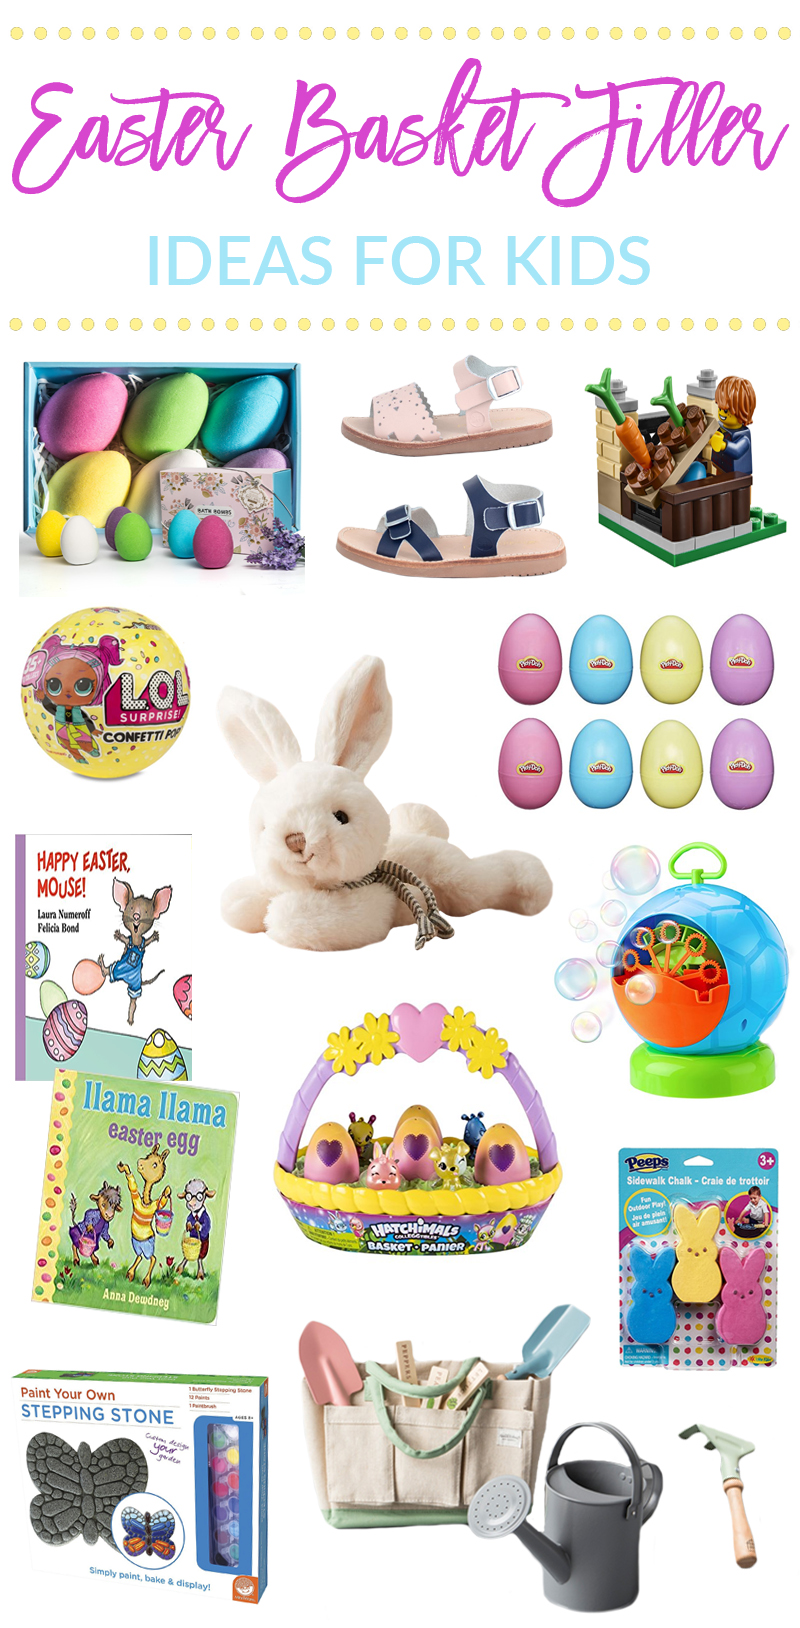 Easter basket filler ideas for kids sandy a la mode easter basket filler ideas for kids by popular utah lifestyle blogger sandy a la mode negle